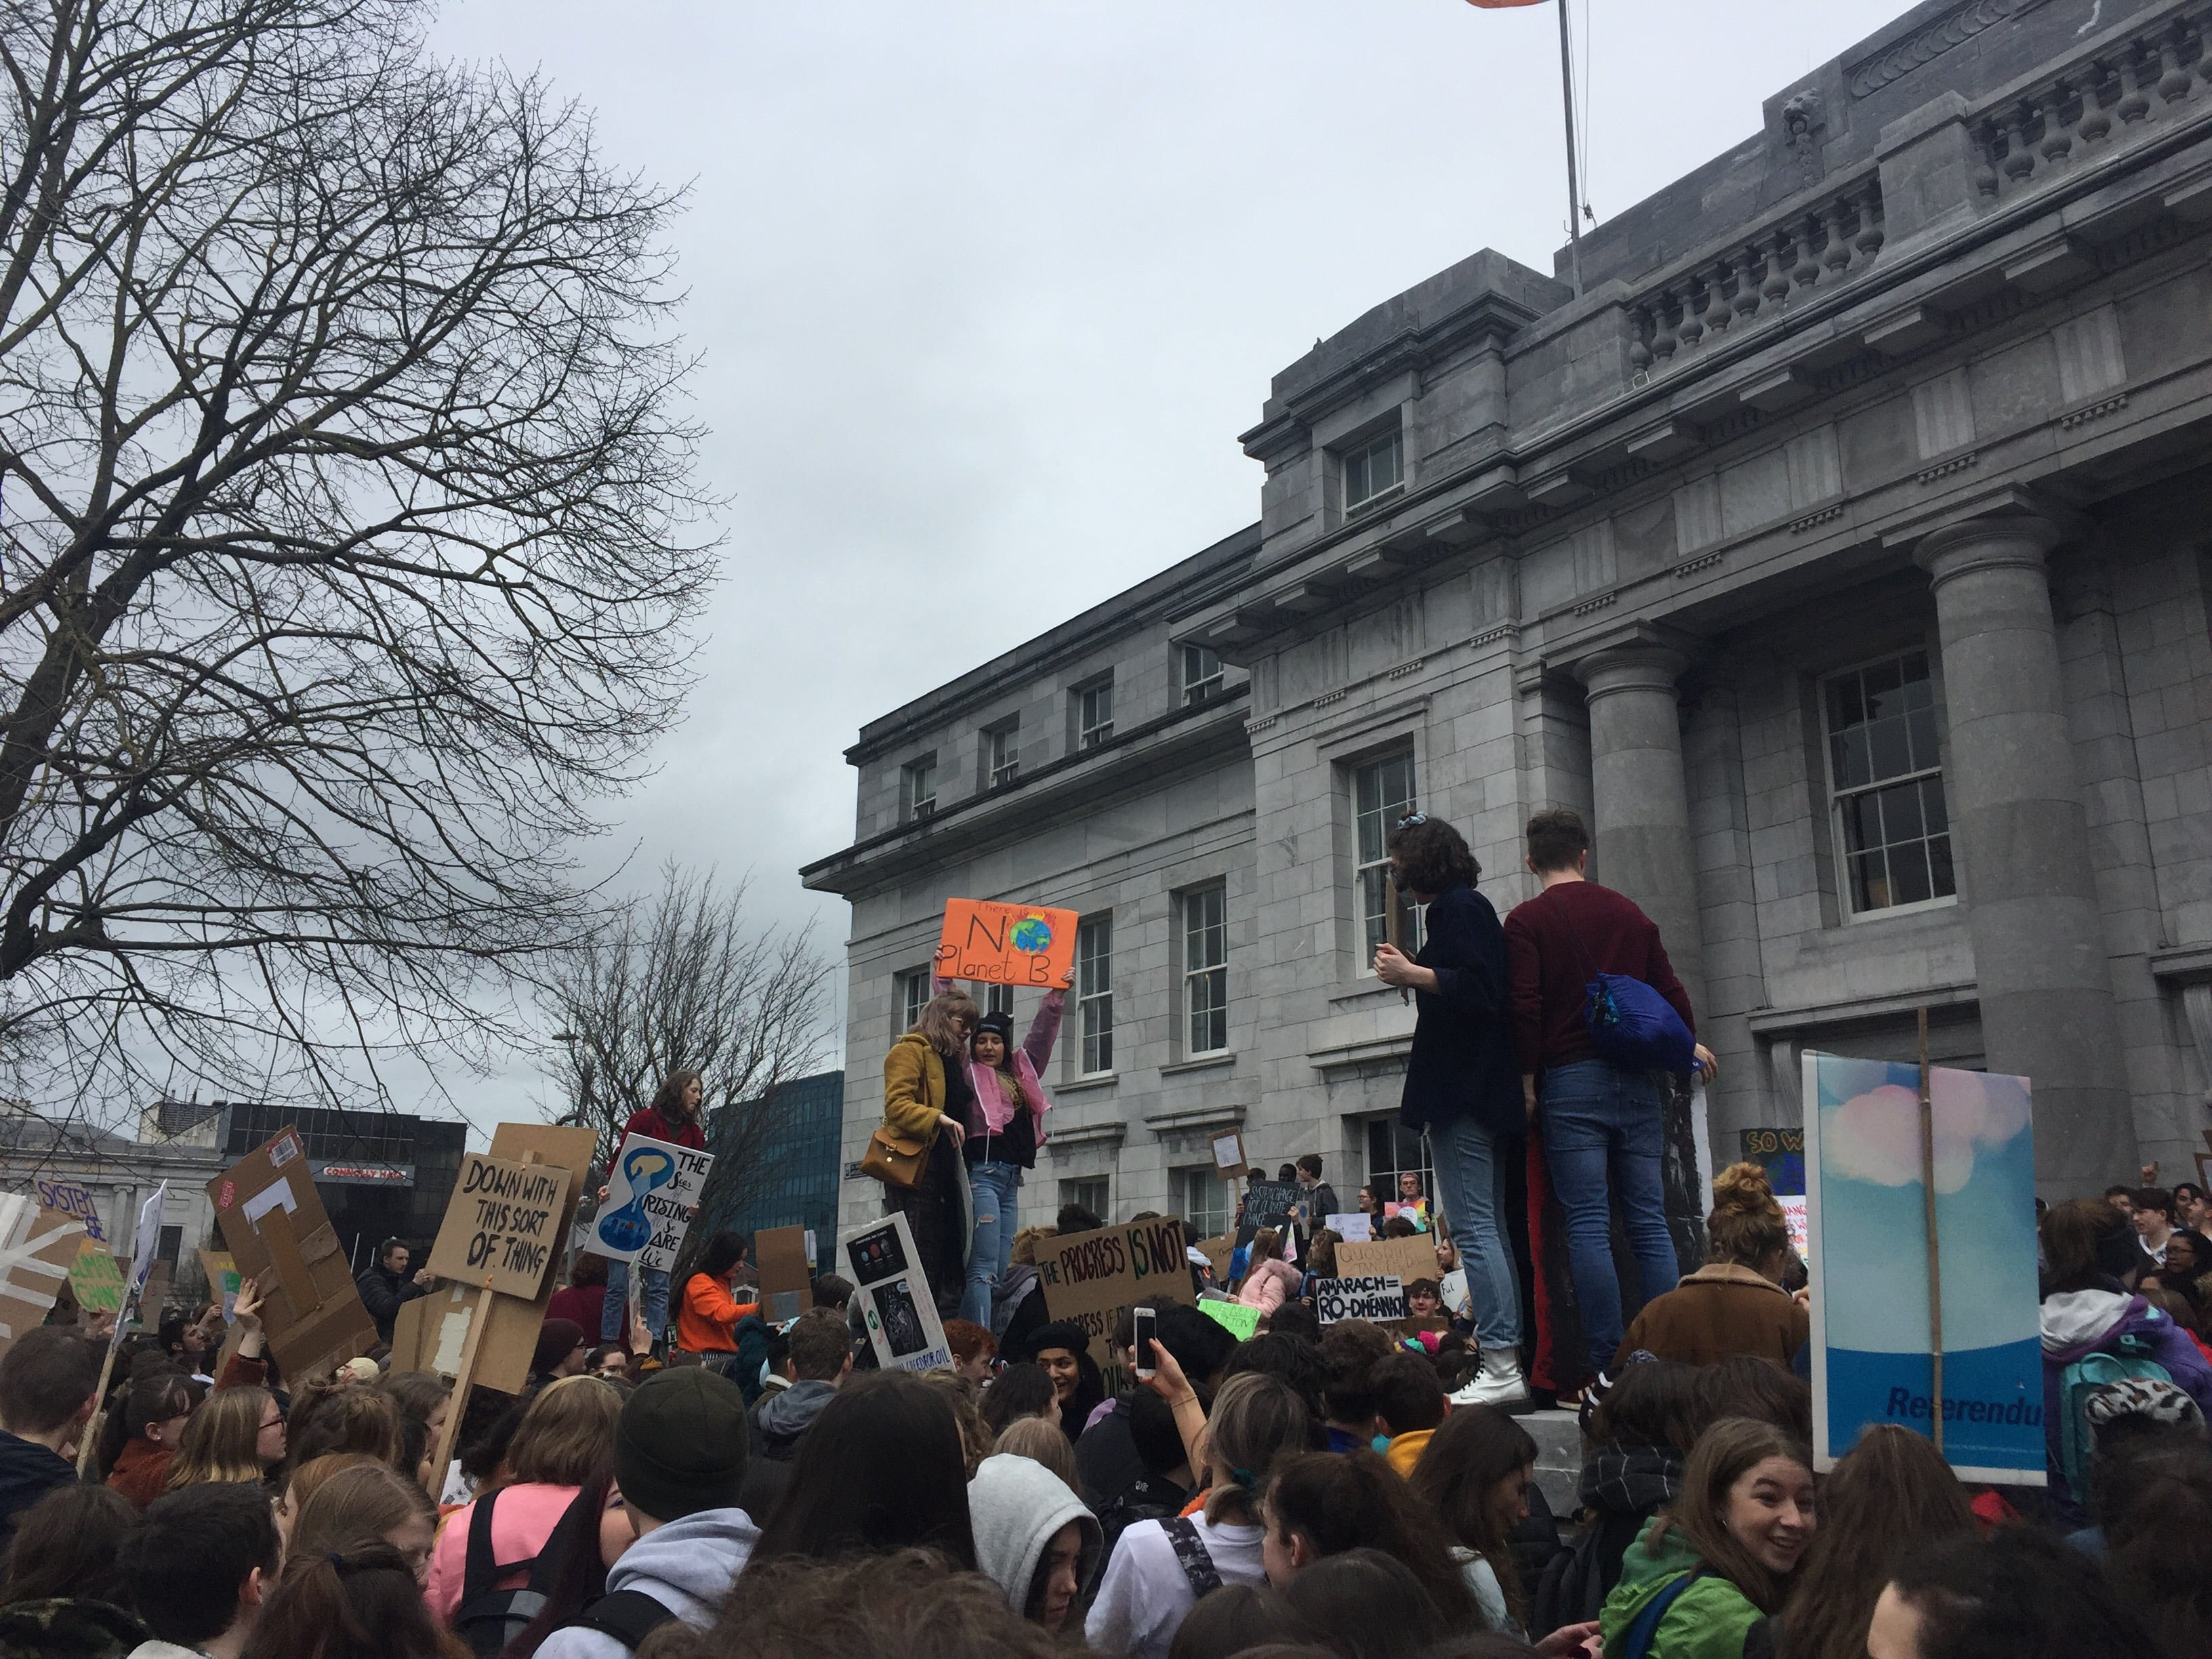 Cork Marches on Climate Change